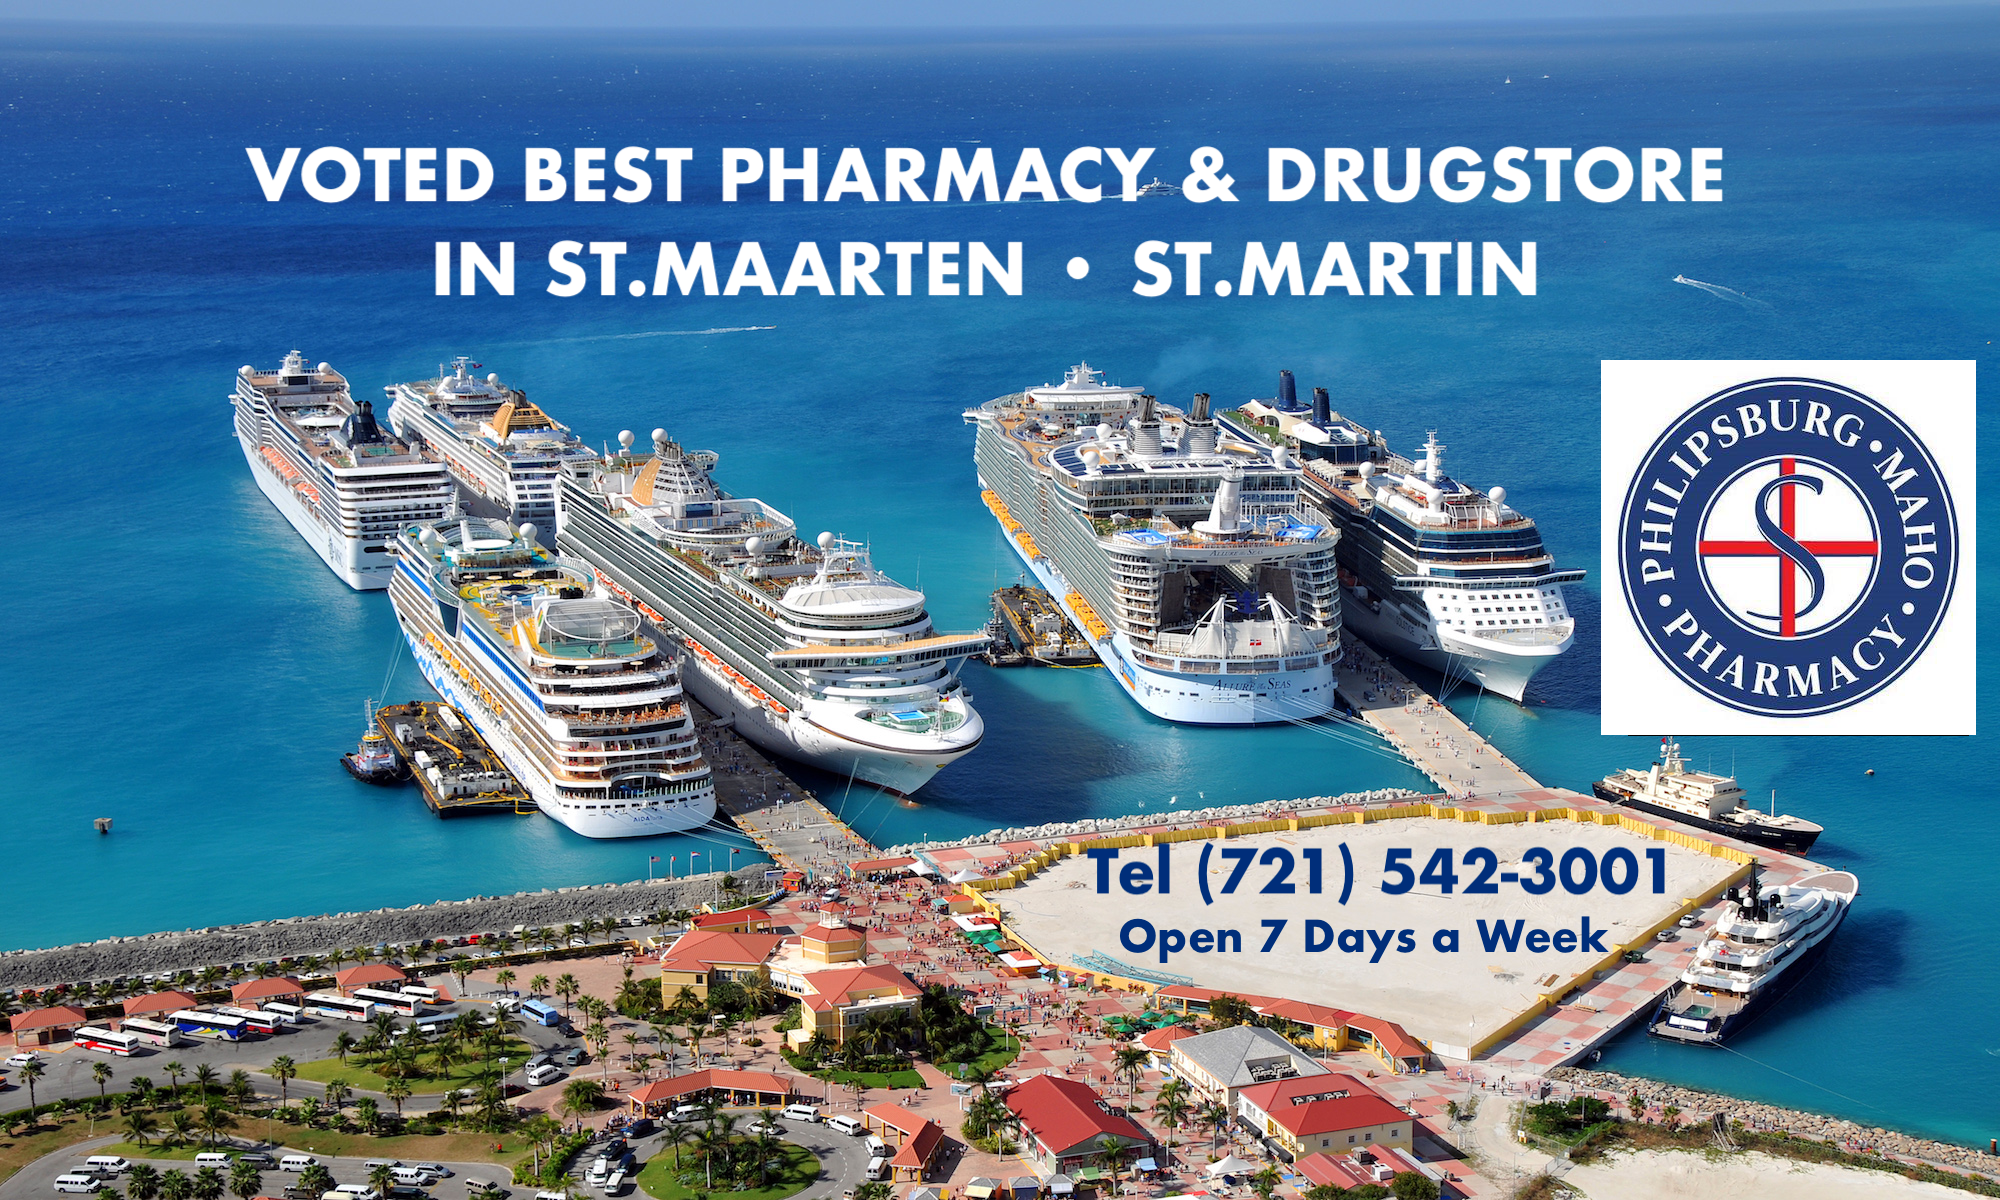 Voted best Pharmacy and Drugstore in St.Maarten-St.Martin